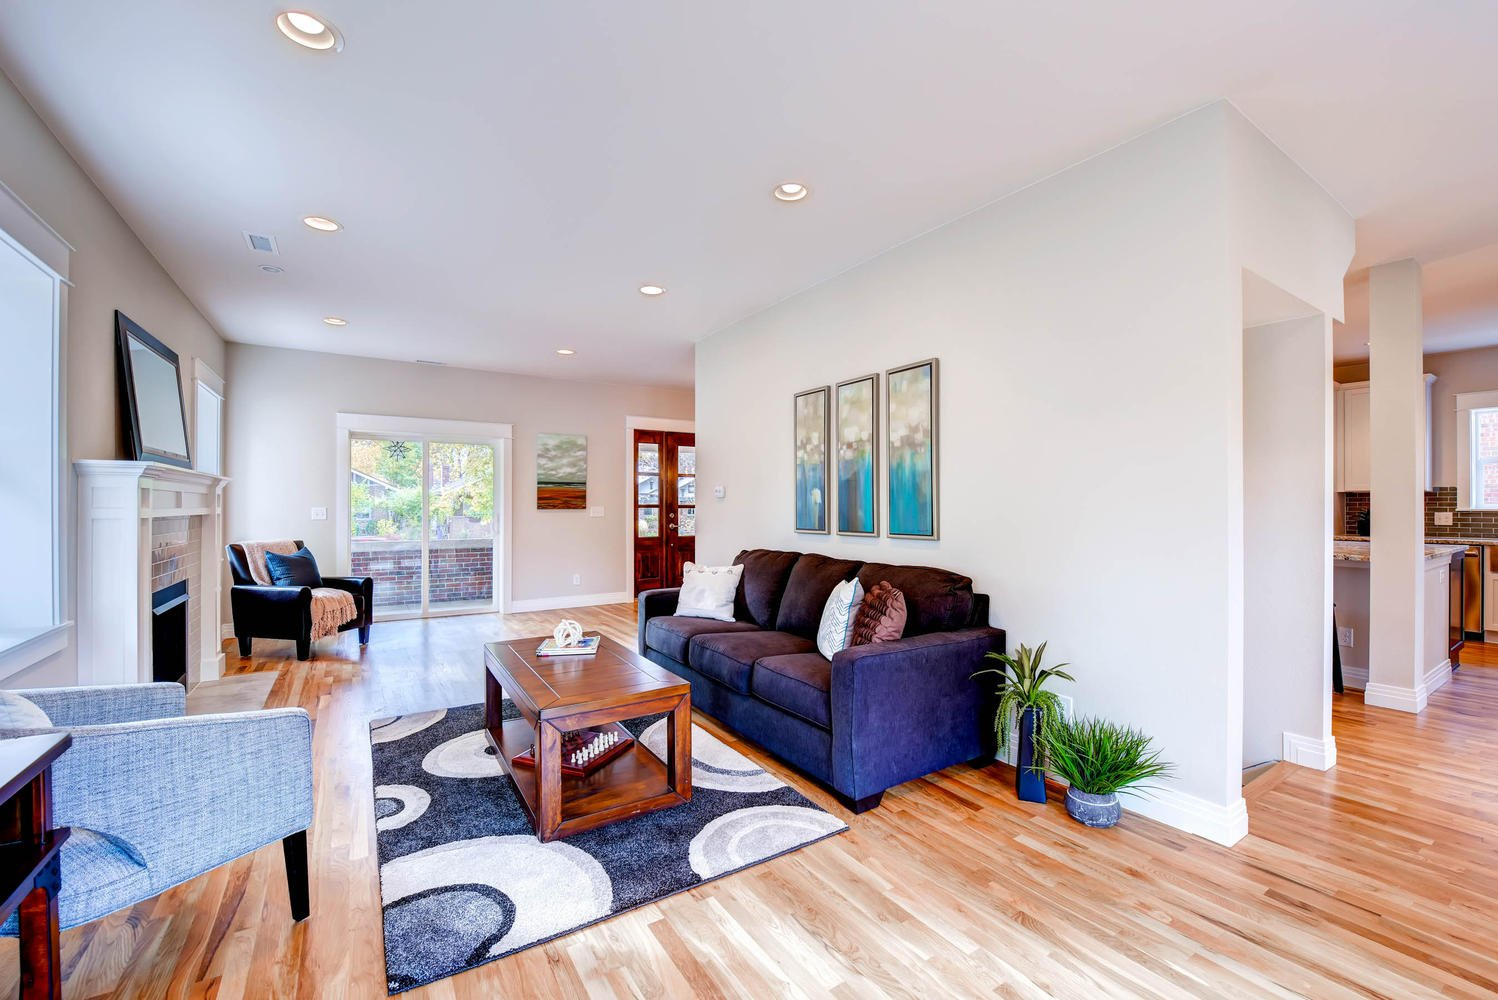 2544 Bellaire St - Seller Site